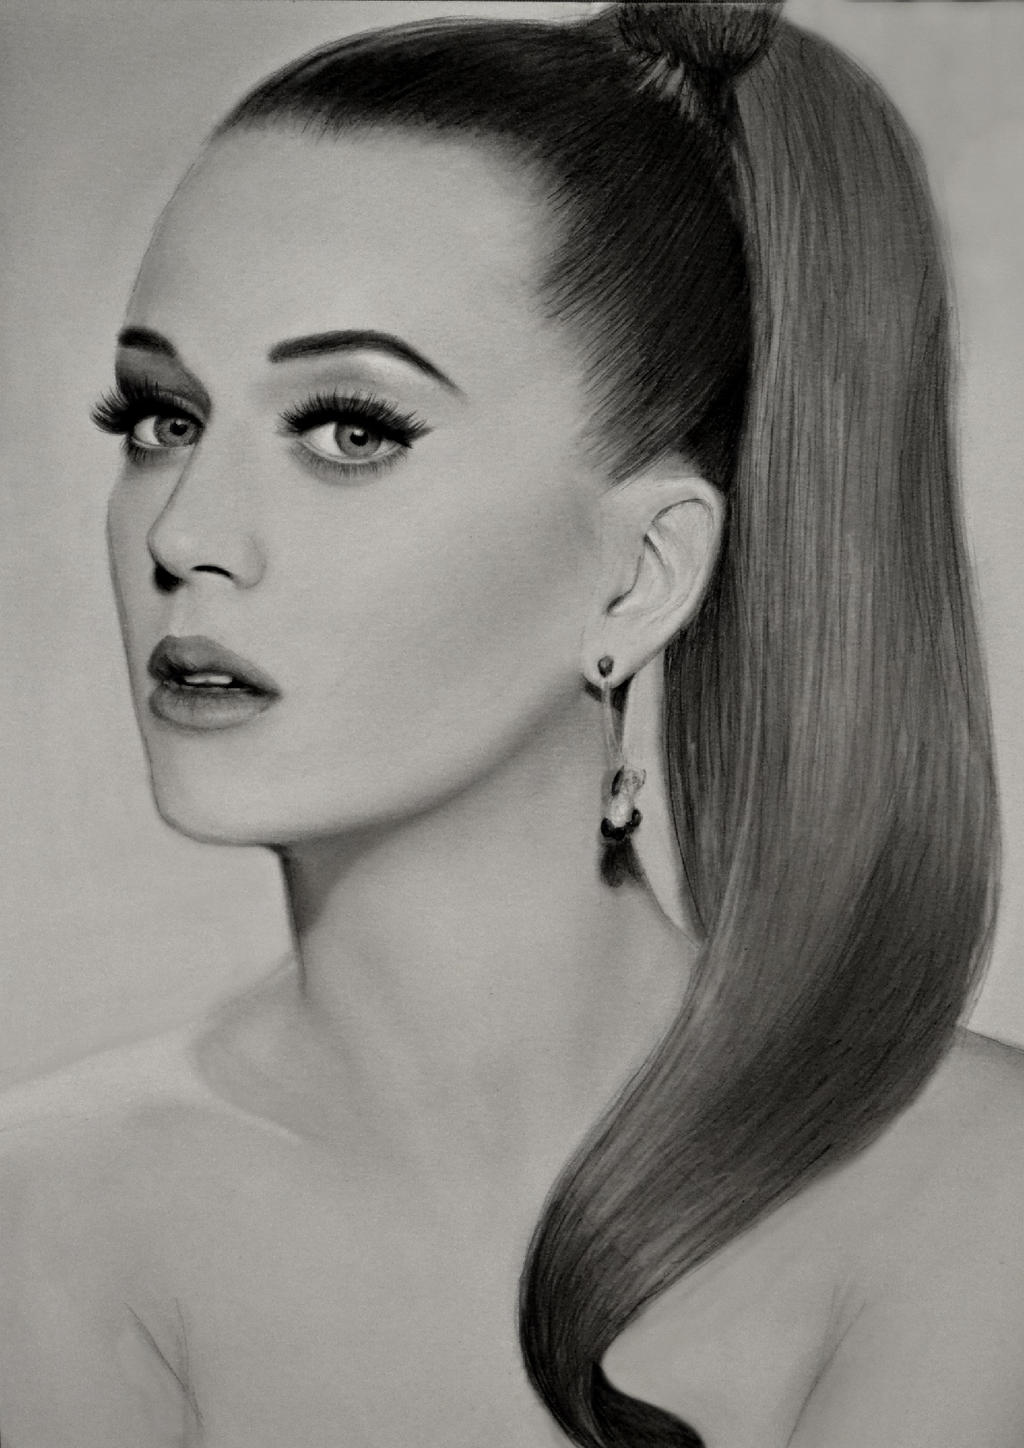 Uncategorized Katy Perry Sketch katy perry by sherleck on deviantart sherleck